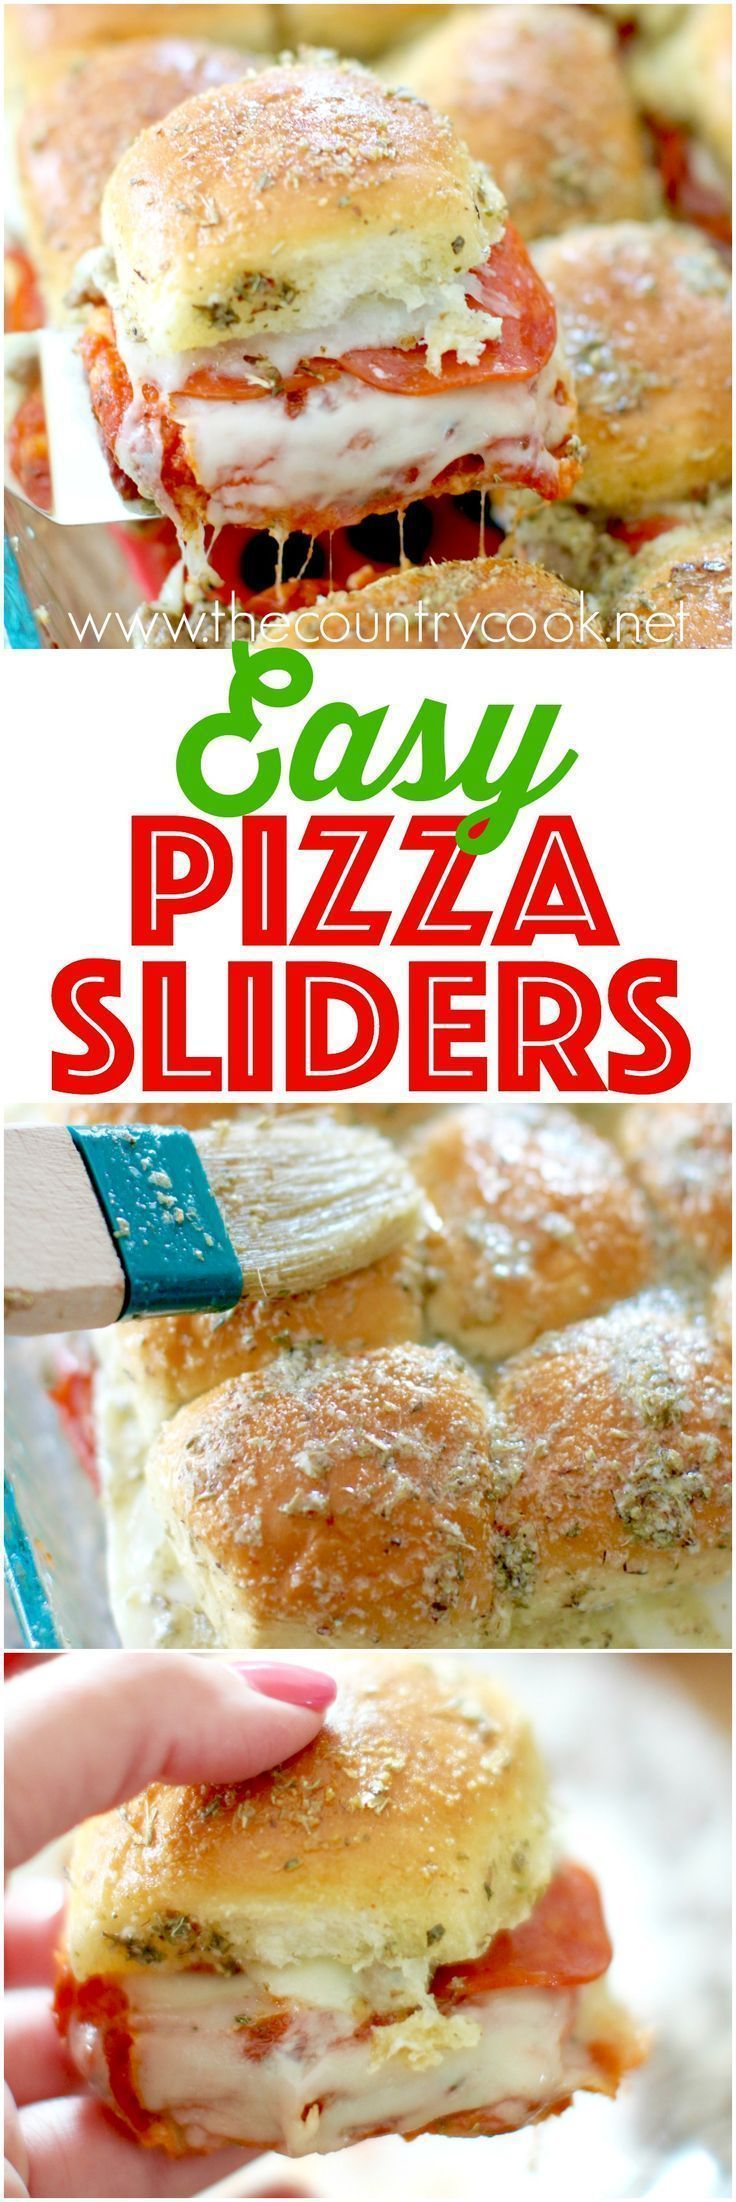 Pizza Pull-Apart Sliders recipe from The Country Cook. Cheesy, meaty filling and the most amazing herb butter topping. You can't eat just one!